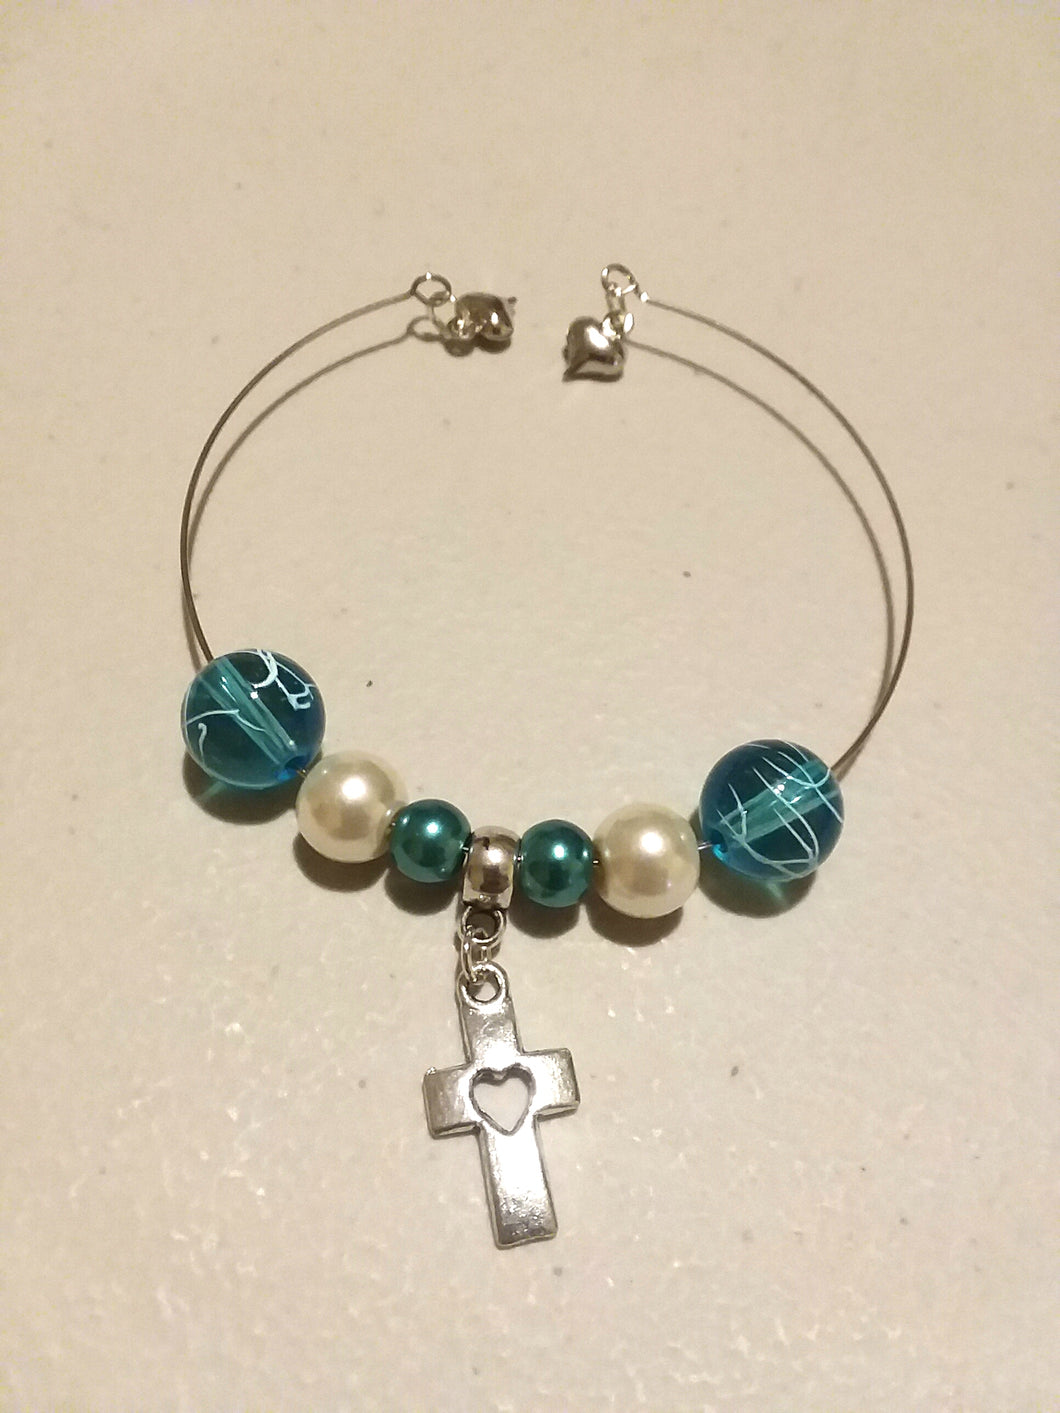 Charm Bracelet Single Layer with 3 Charms, 6 Beads, and a Cross Charm